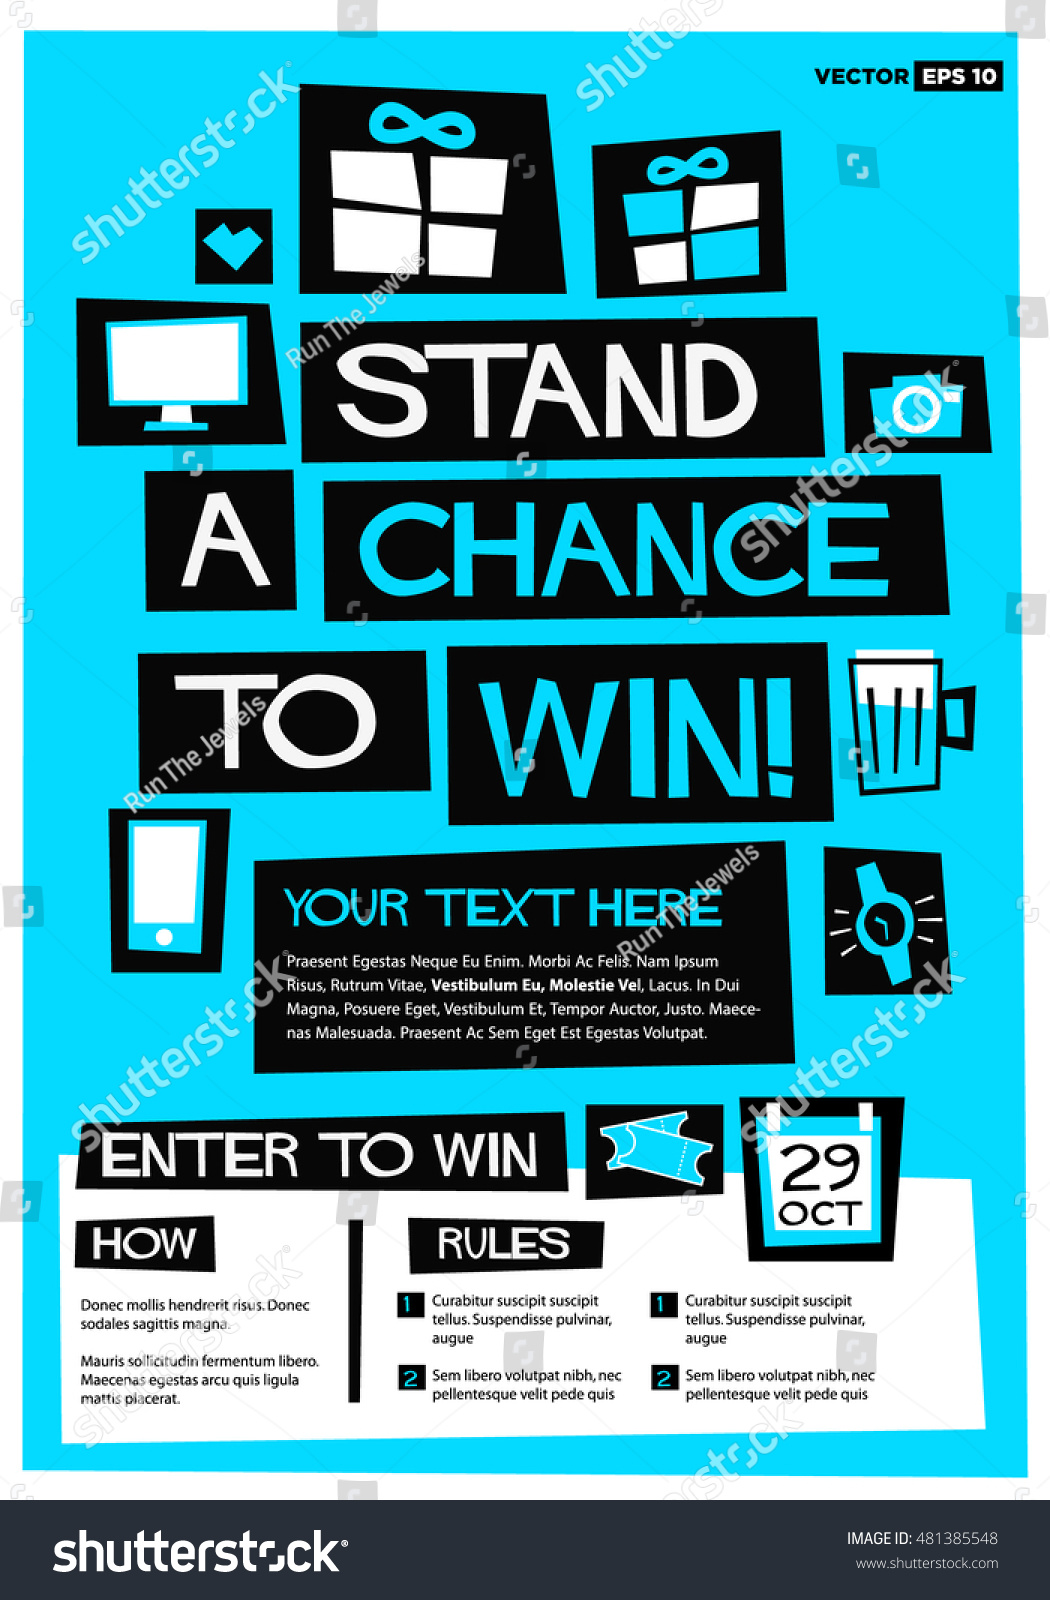 Poster design rules -  Flat Style Vector Illustration Contest Poster Design With